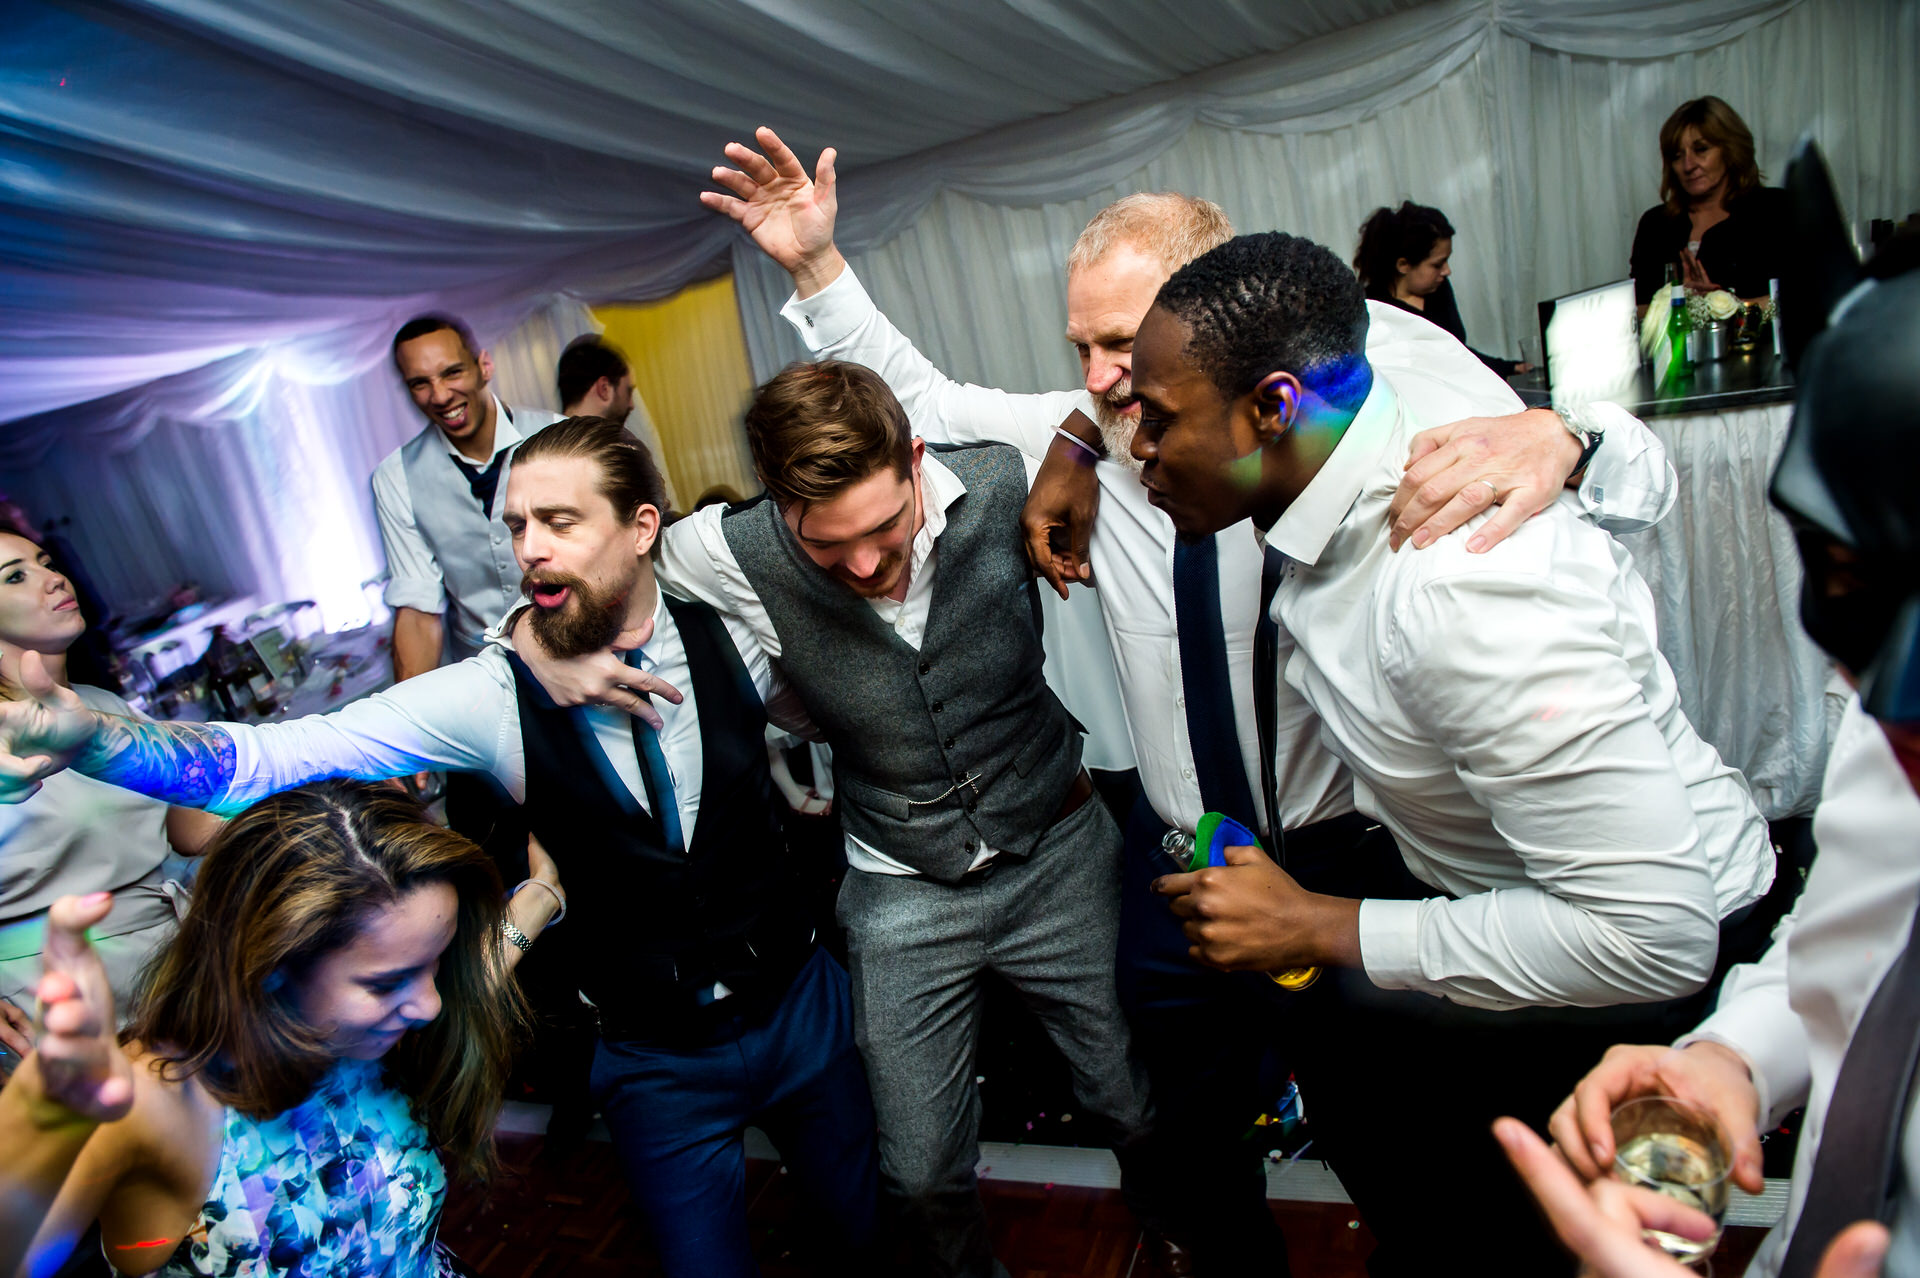 crazy wedding party photography